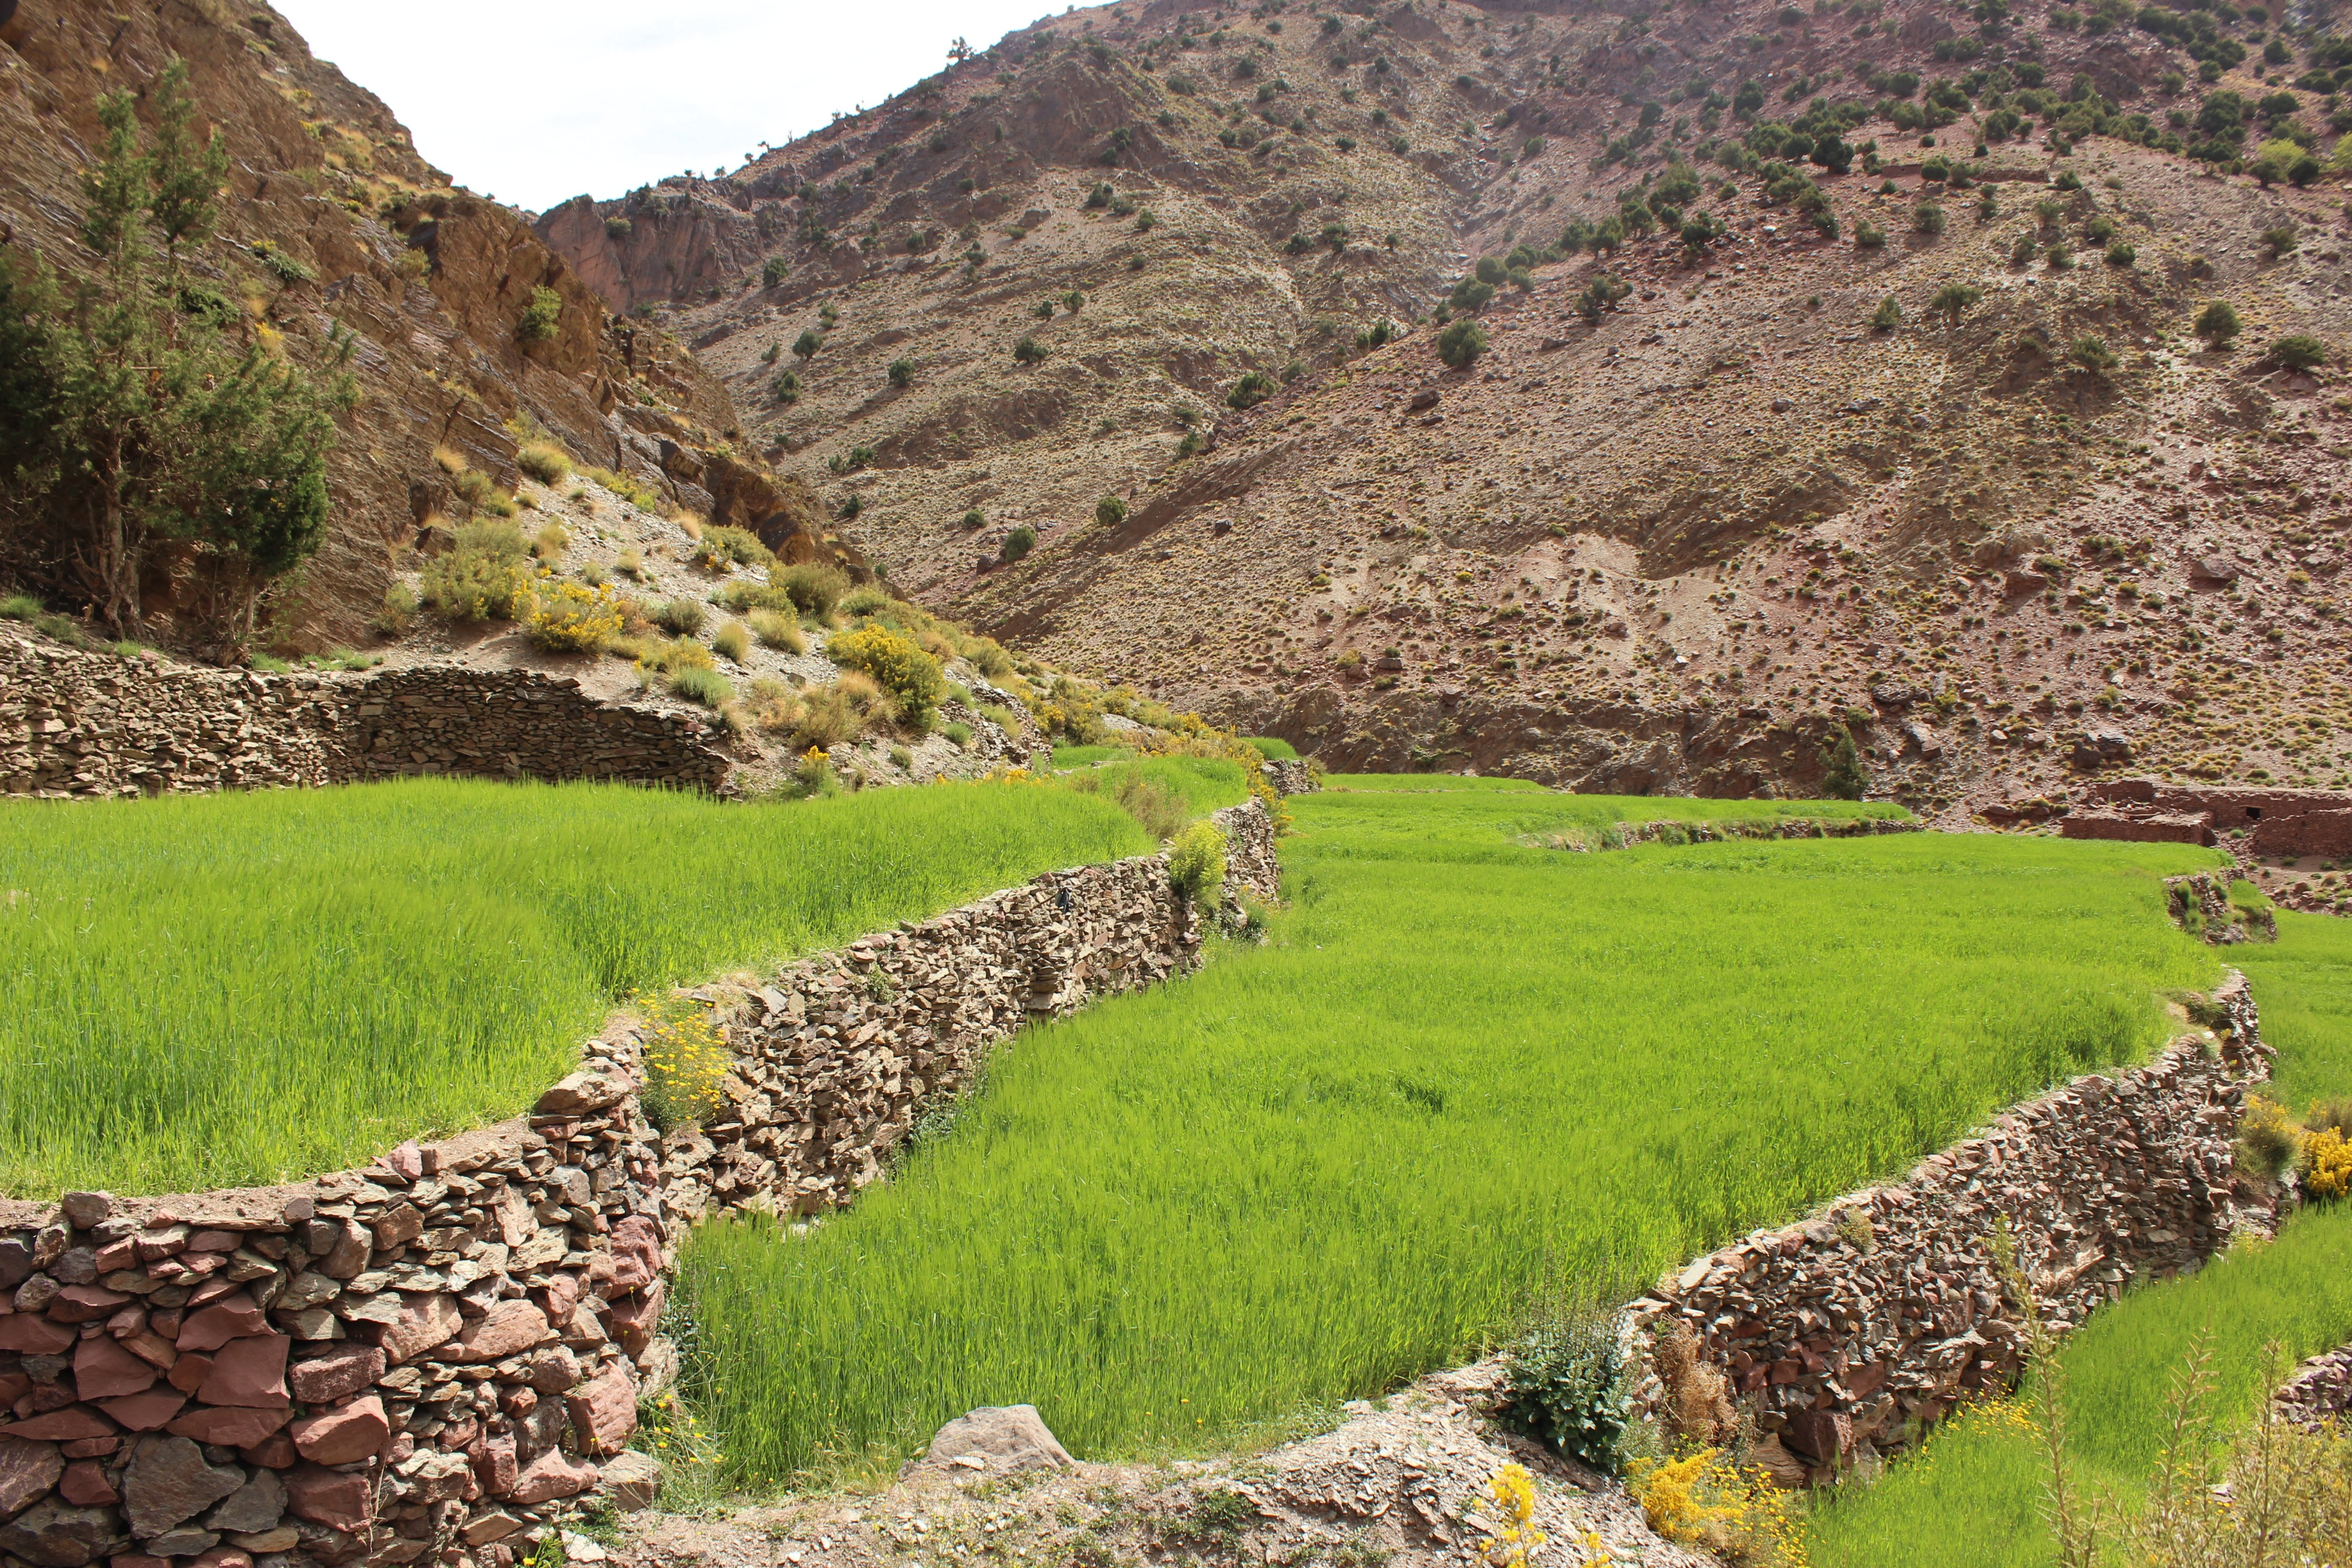 Lime-green barley terrace of lower valley, M'goun massif, High Atlas mountains, Morocco